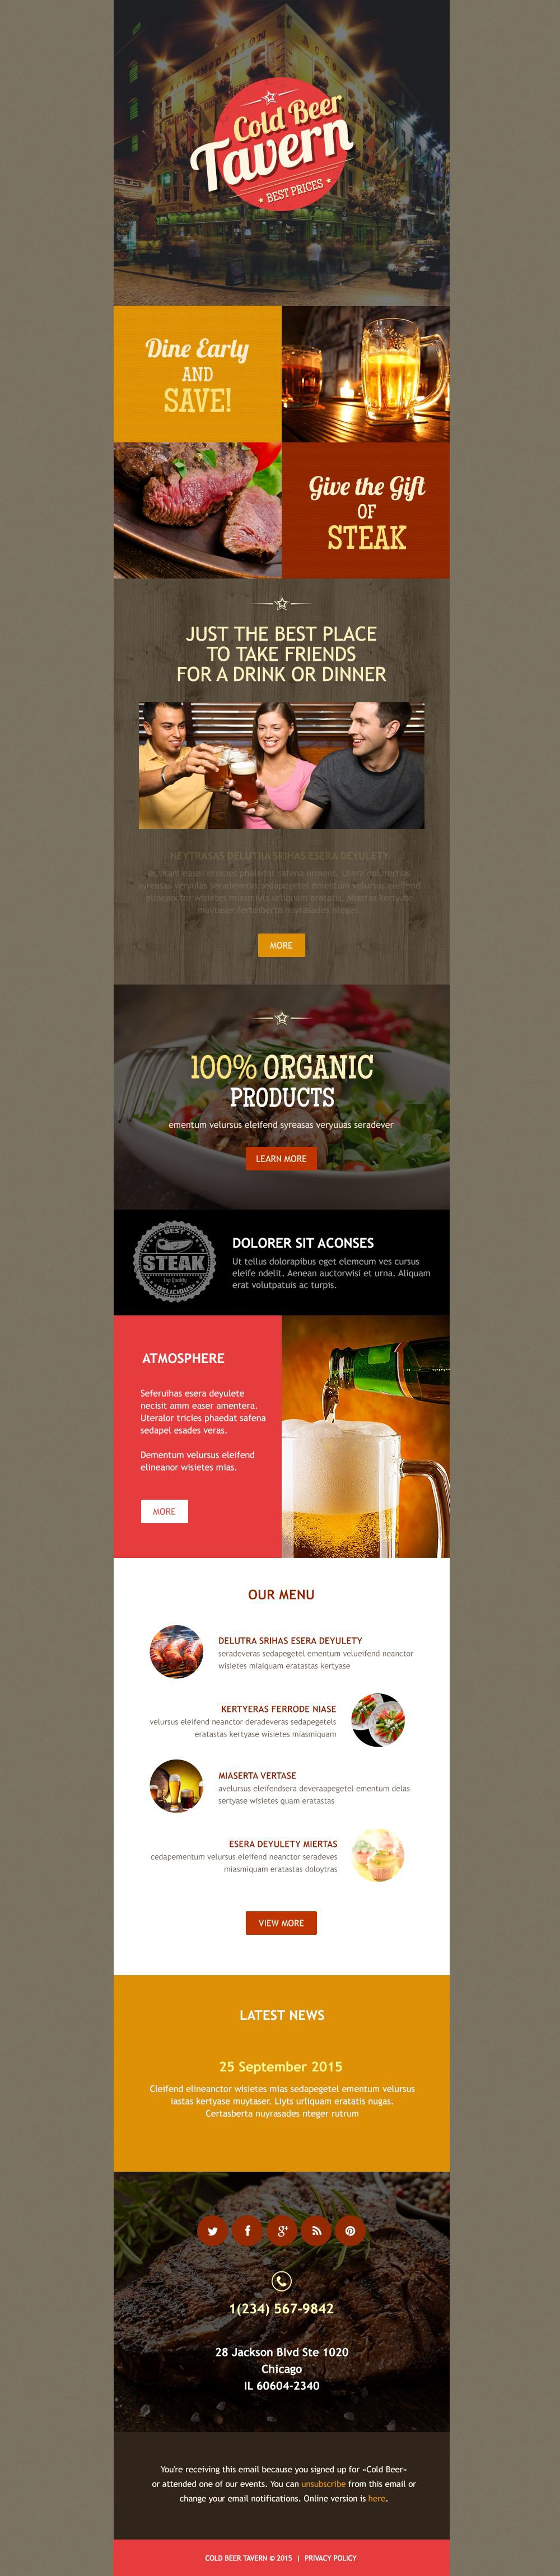 The Cold Beer Tavern Restaurant Newsletter Template Design 54588, one of the best Newsletter templates of its kind (cafe and restaurant, most popular), also known as Cold Beer Tavern restaurant Newsletter template, cafe Newsletter template, food Newsletter template, meal Newsletter template, cuisine Newsletter template, drink Newsletter template, menu Newsletter template, waiters Newsletter template, dish Newsletter template, wine Newsletter template, taste Newsletter template, tasty Newsletter template, flavor Newsletter template, reservation Newsletter template, specials Newsletter template, recipe Newsletter template, launch Newsletter template, dinner Newsletter template, testimonials Newsletter template, offers Newsletter template, kitchen Newsletter template, cookbook Newsletter template, vegetarian Newsletter template, cocktail Newsletter template, beverage Newsletter template, specials Newsletter template, gifts Newsletter template, bonuses Newsletter template, discount Newsletter template, patrons Newsletter template, reservation and related with Cold Beer Tavern restaurant, cafe, food, meal, cuisine, drink, menu, waiters, dish, wine, taste, tasty, flavor, reservation, specials, recipe, launch, dinner, testimonials, offers, kitchen, cookbook, vegetarian, cocktail, beverage, specials, gifts, bonuses, discount, patrons, reservation, etc.